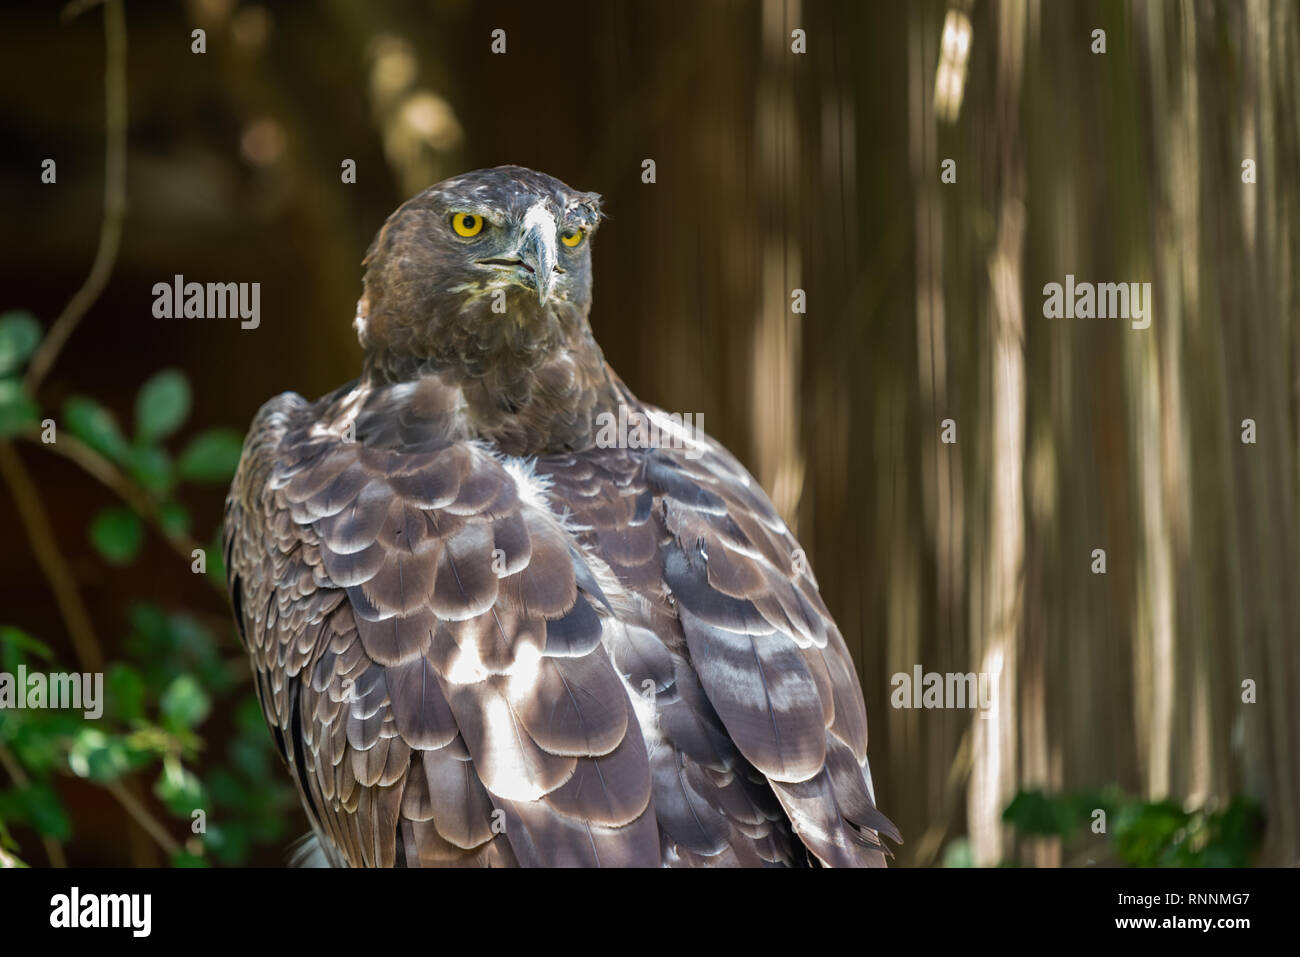 The fierce gaze of a Martial Eagle at the African Raptor Centre, Natal Midlands, South Africa. - Stock Image